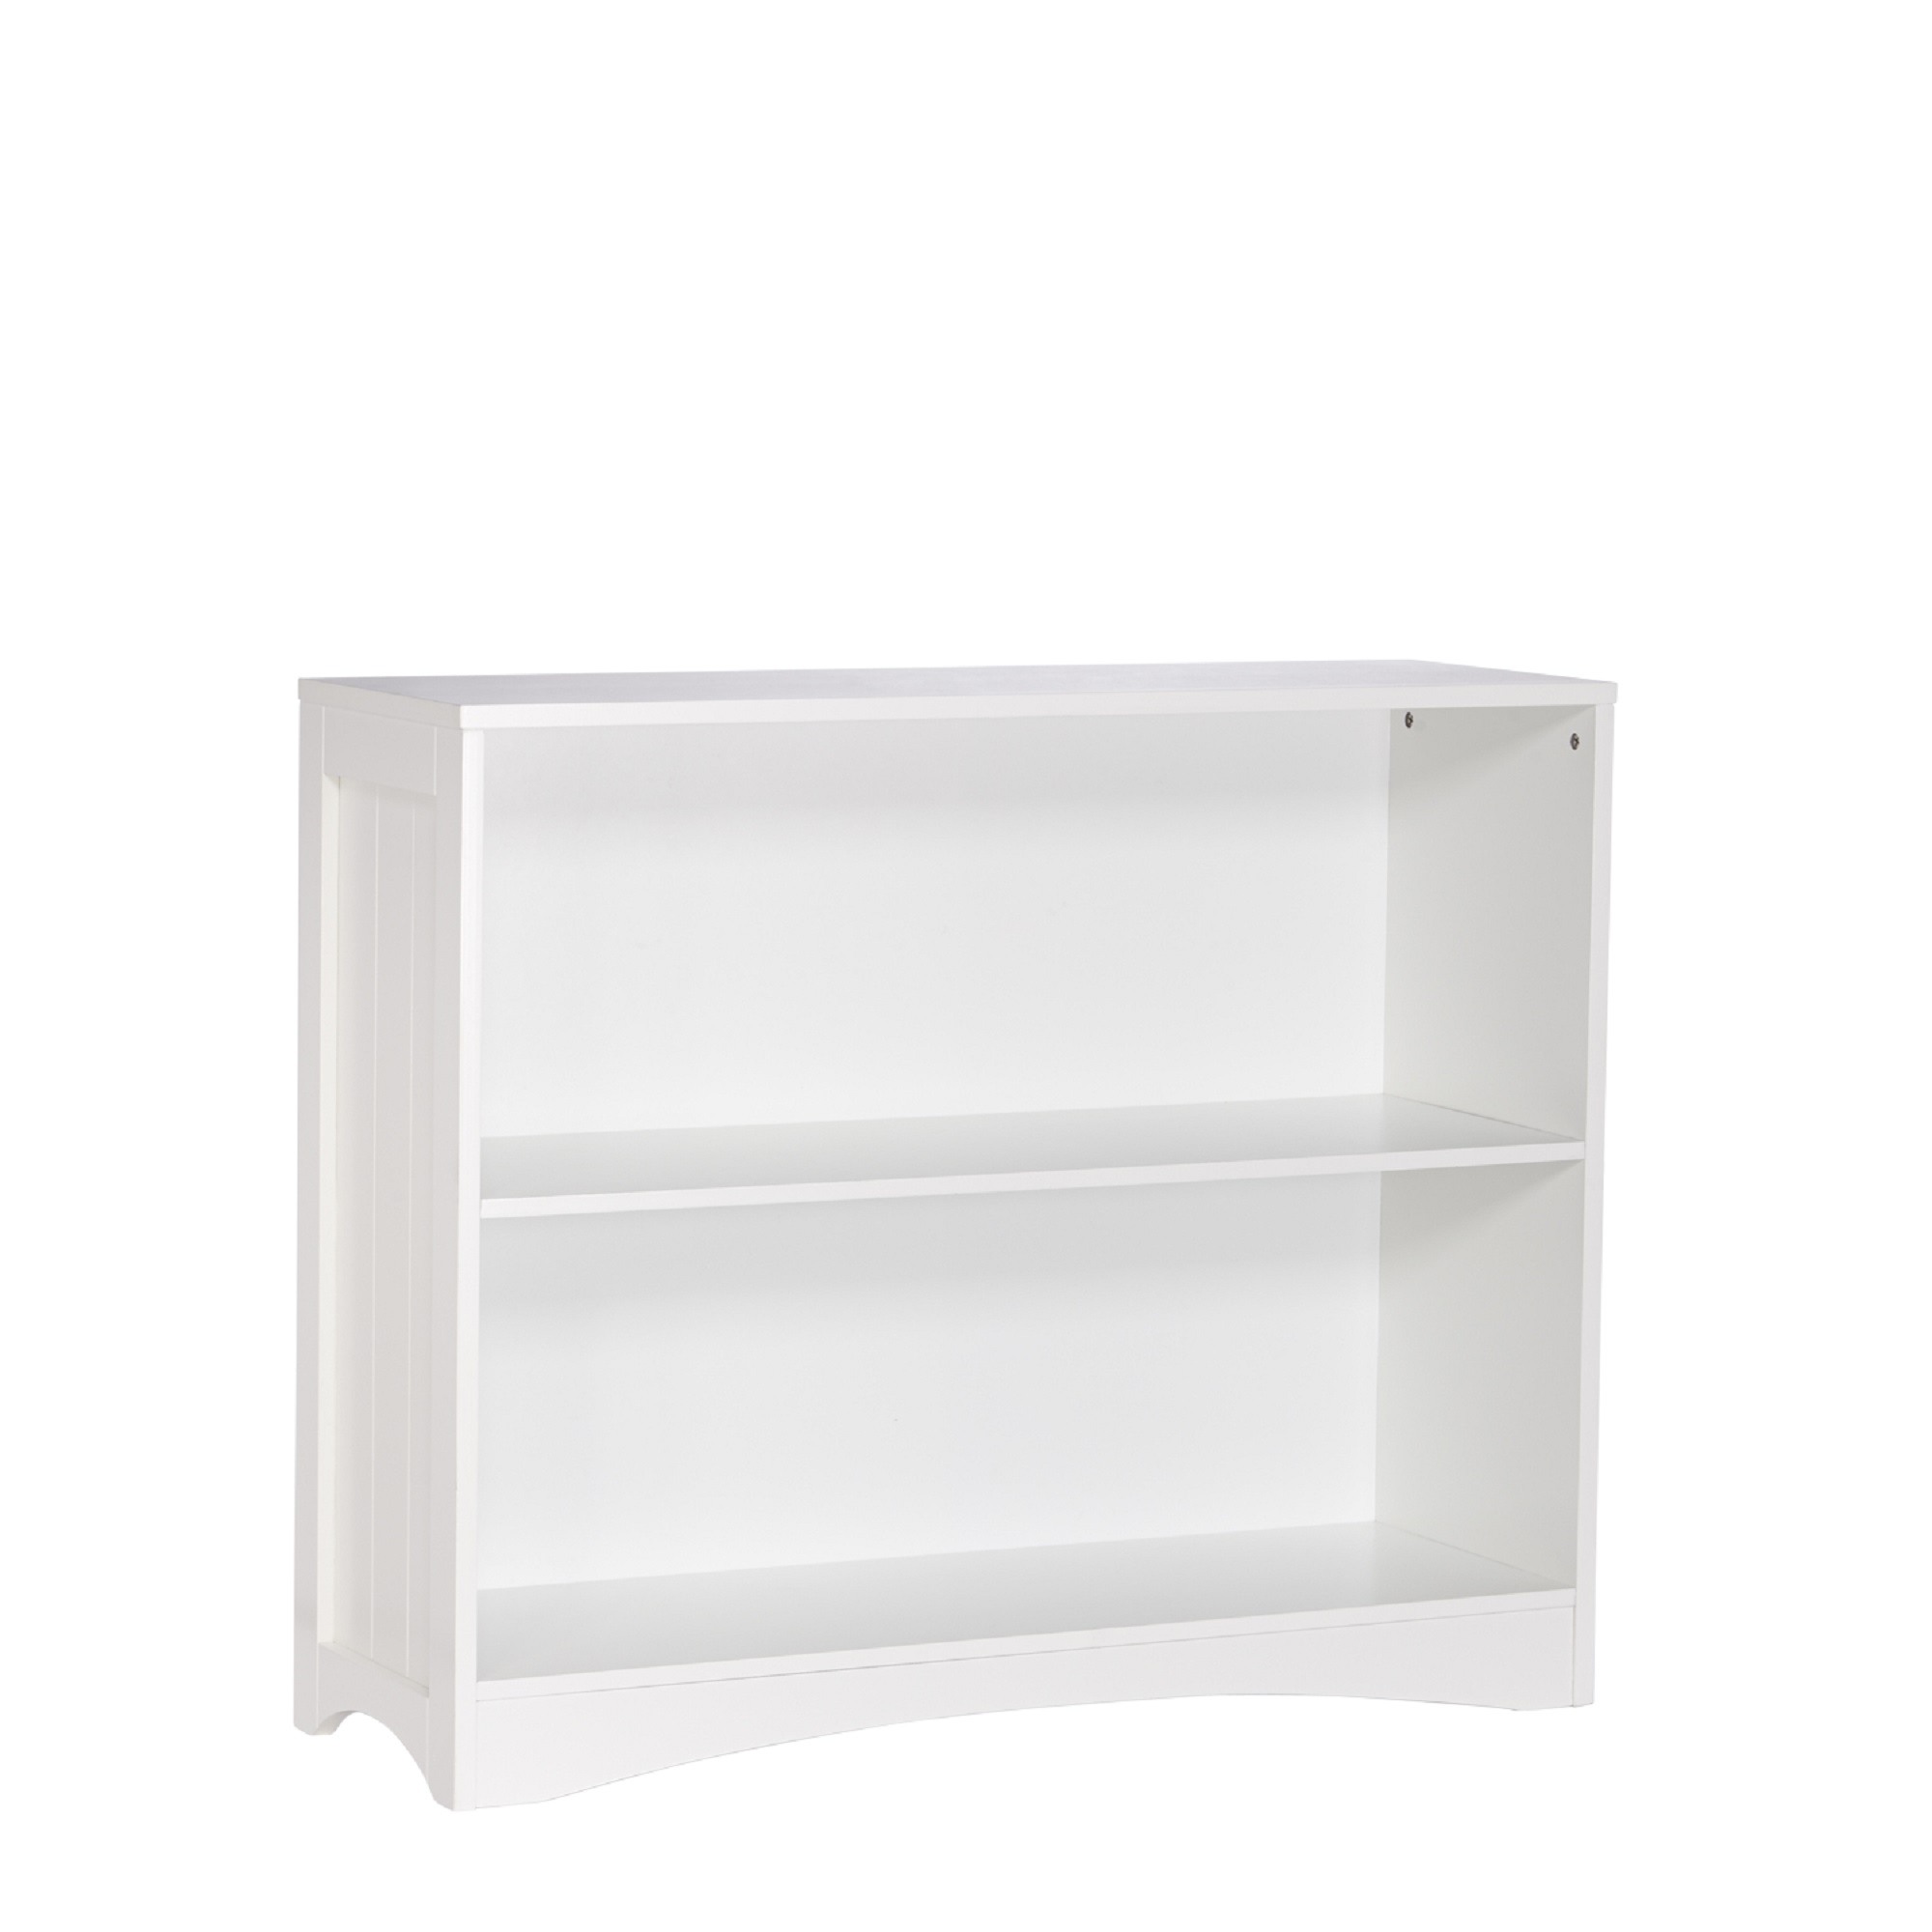 premium bookcases solid cheap horizontal unit home vn wood white decor target discount cube contemporary wayfair dlmon bookcase theater adjustable stores ideas catalog diy